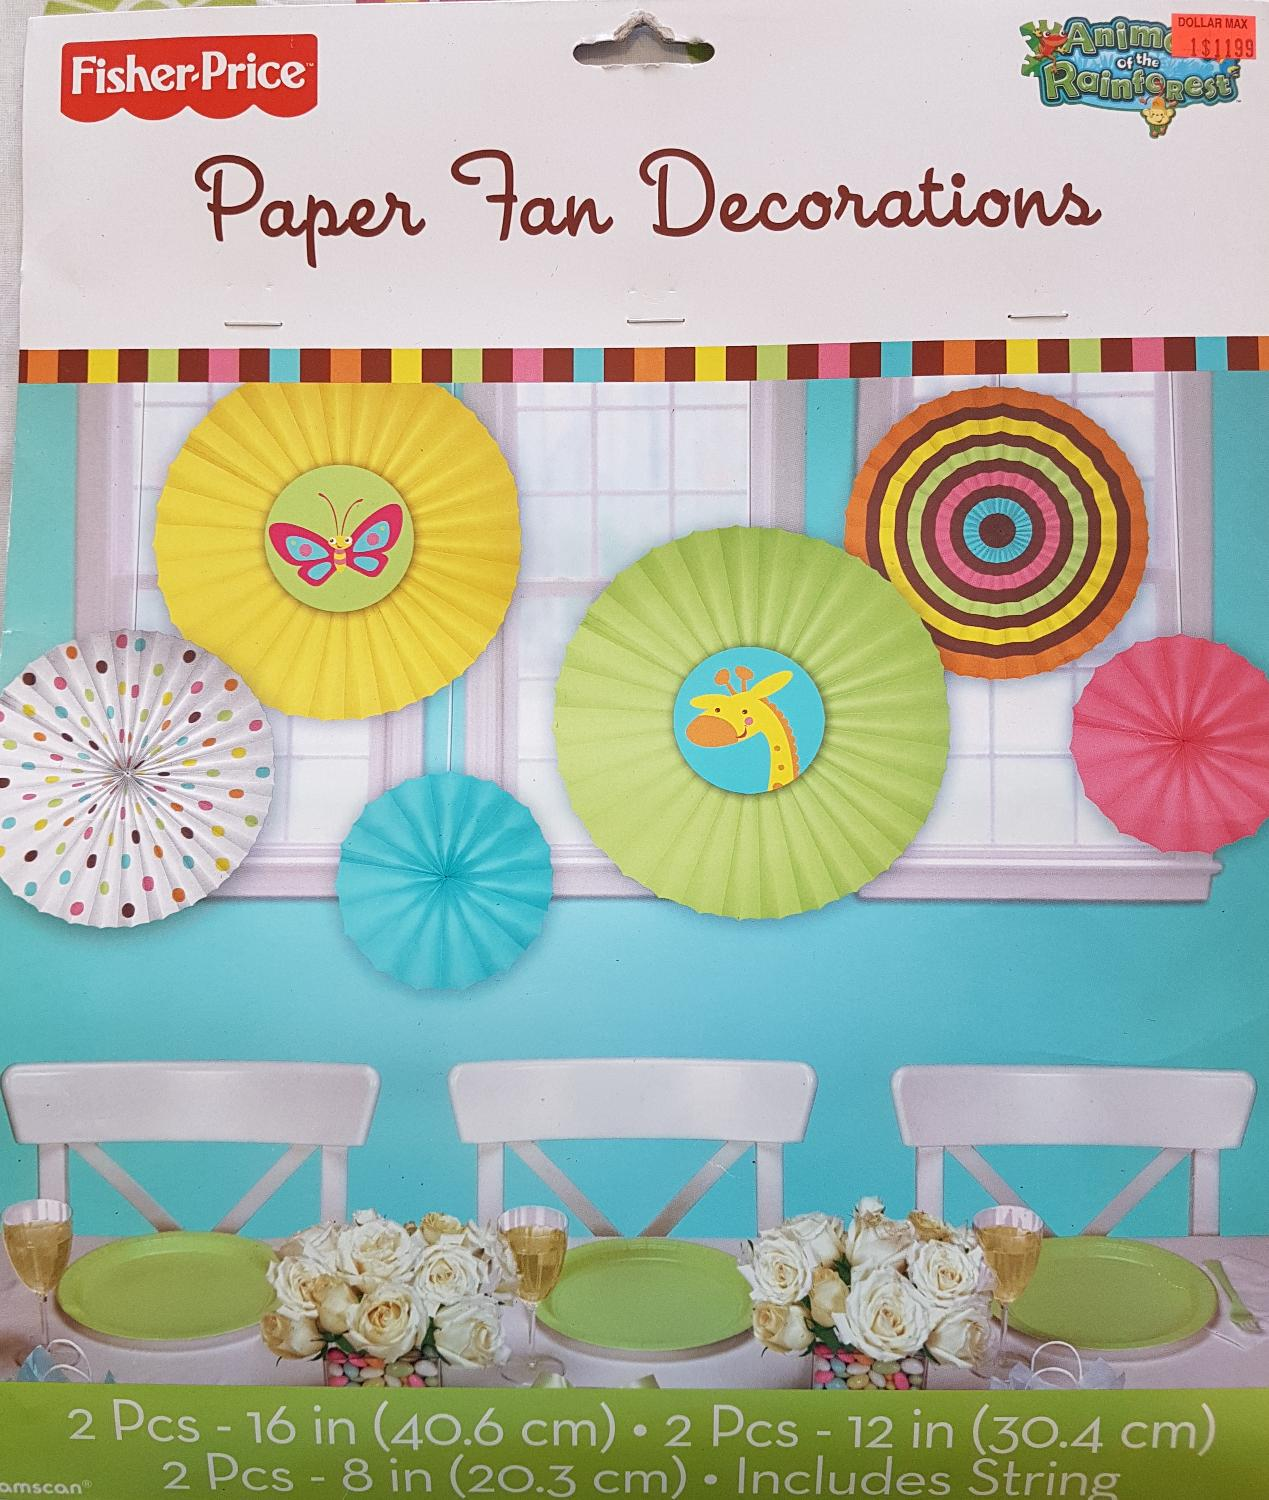 Best Paper Fan Decorations Animal Of The Rainforest For In Vaudreuil Quebec 2019